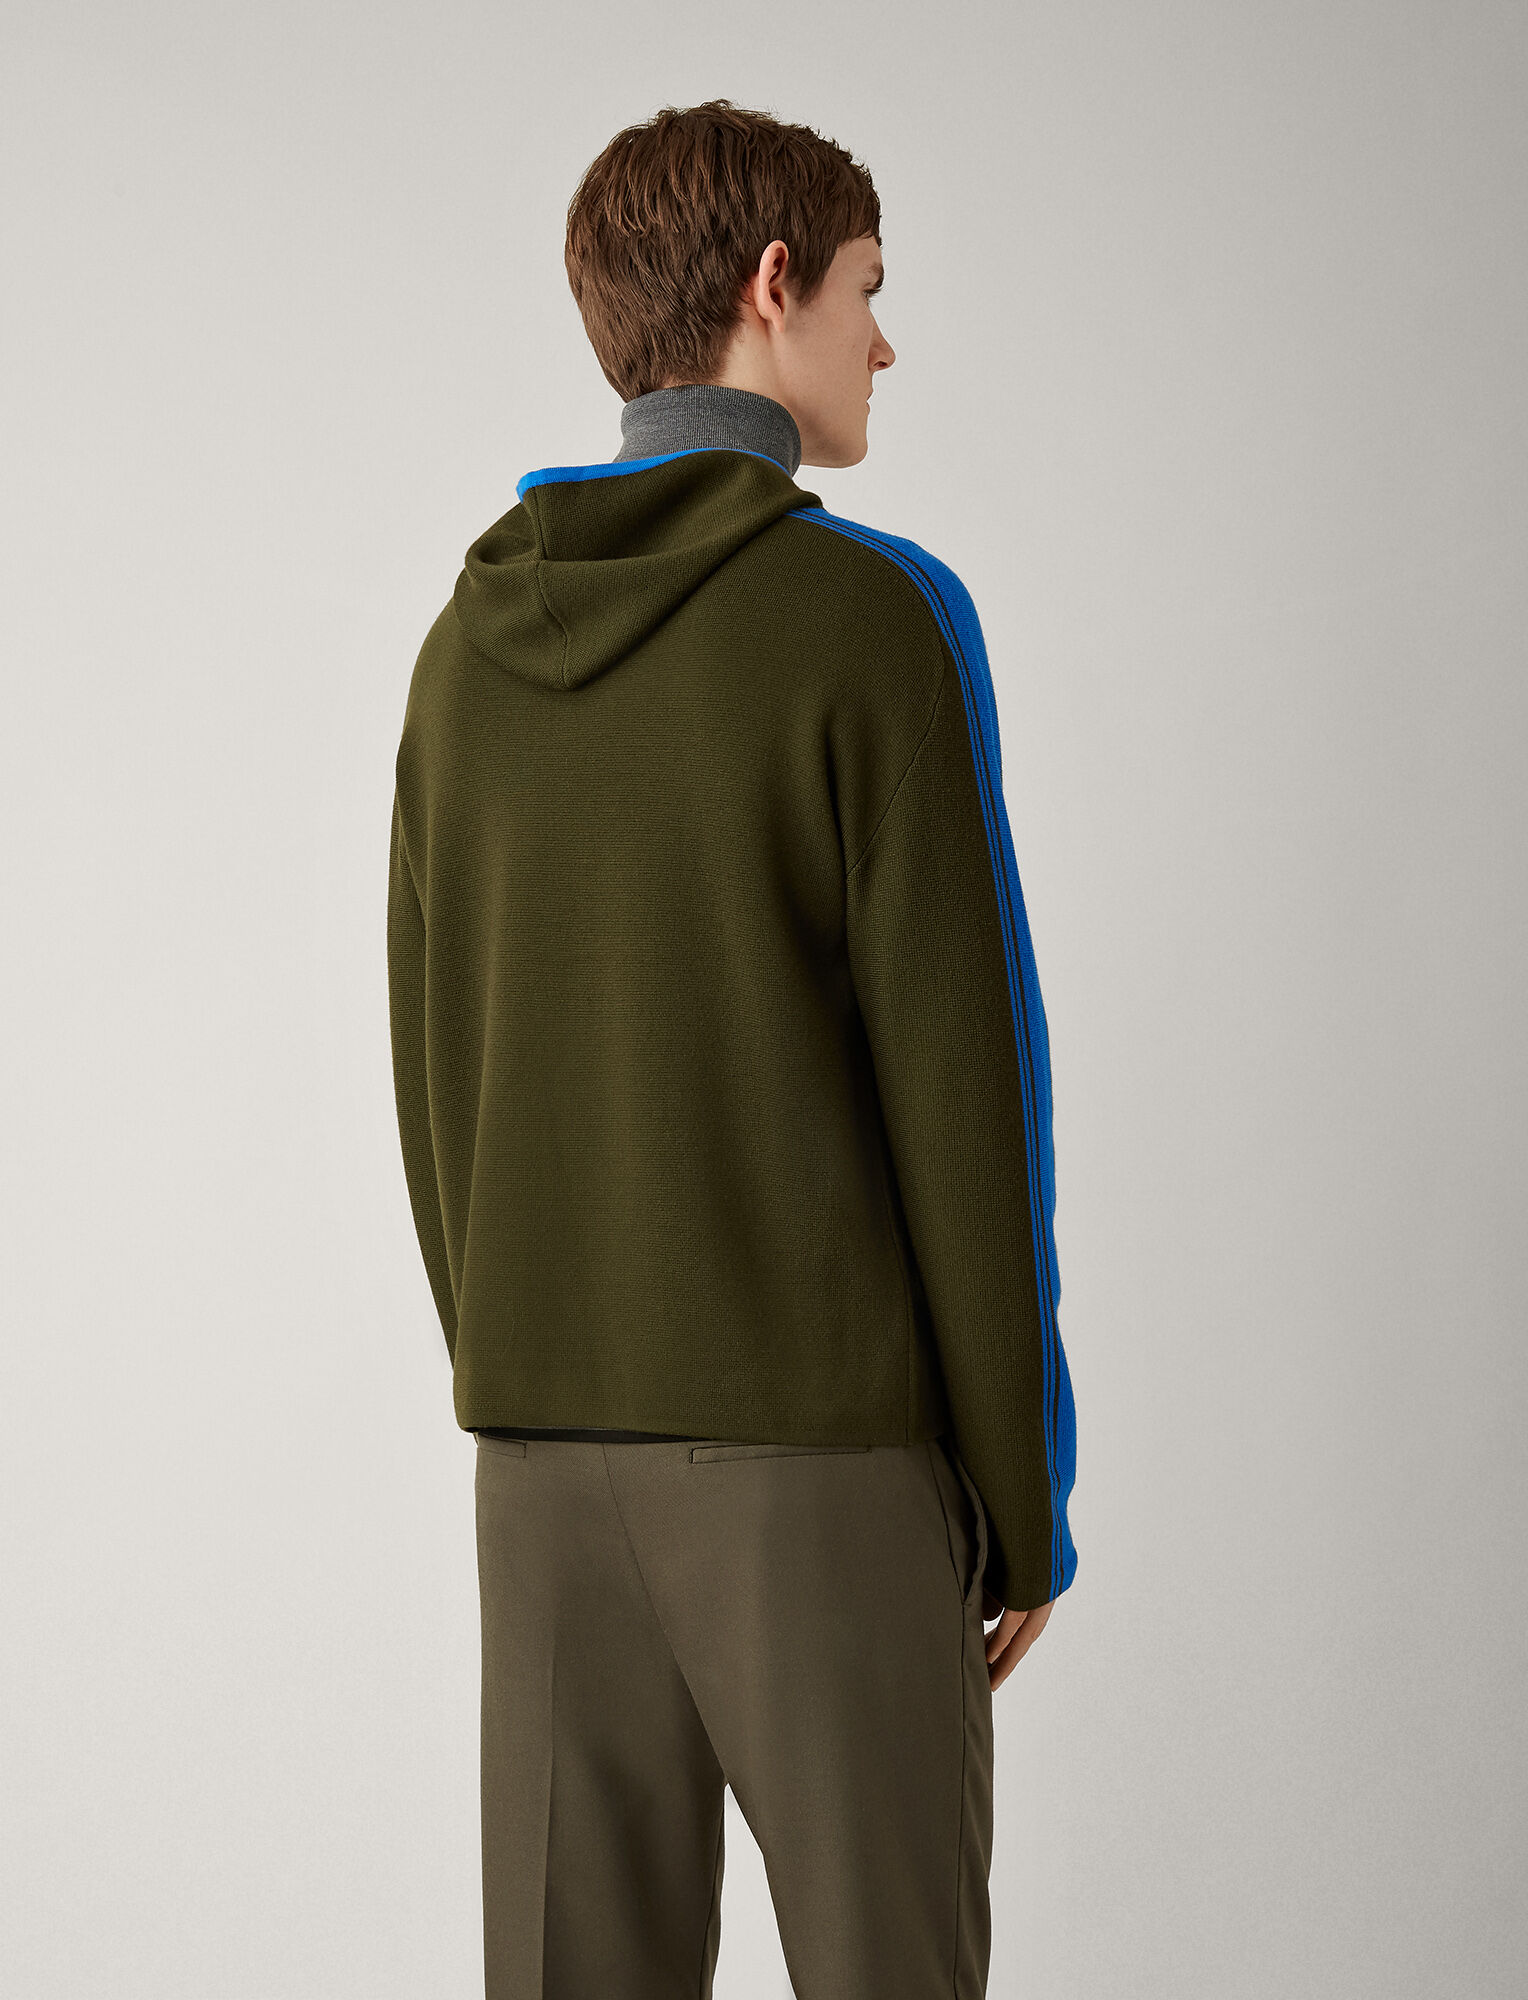 Joseph, Sportwear Milano Knit Hoody, in MILITARY